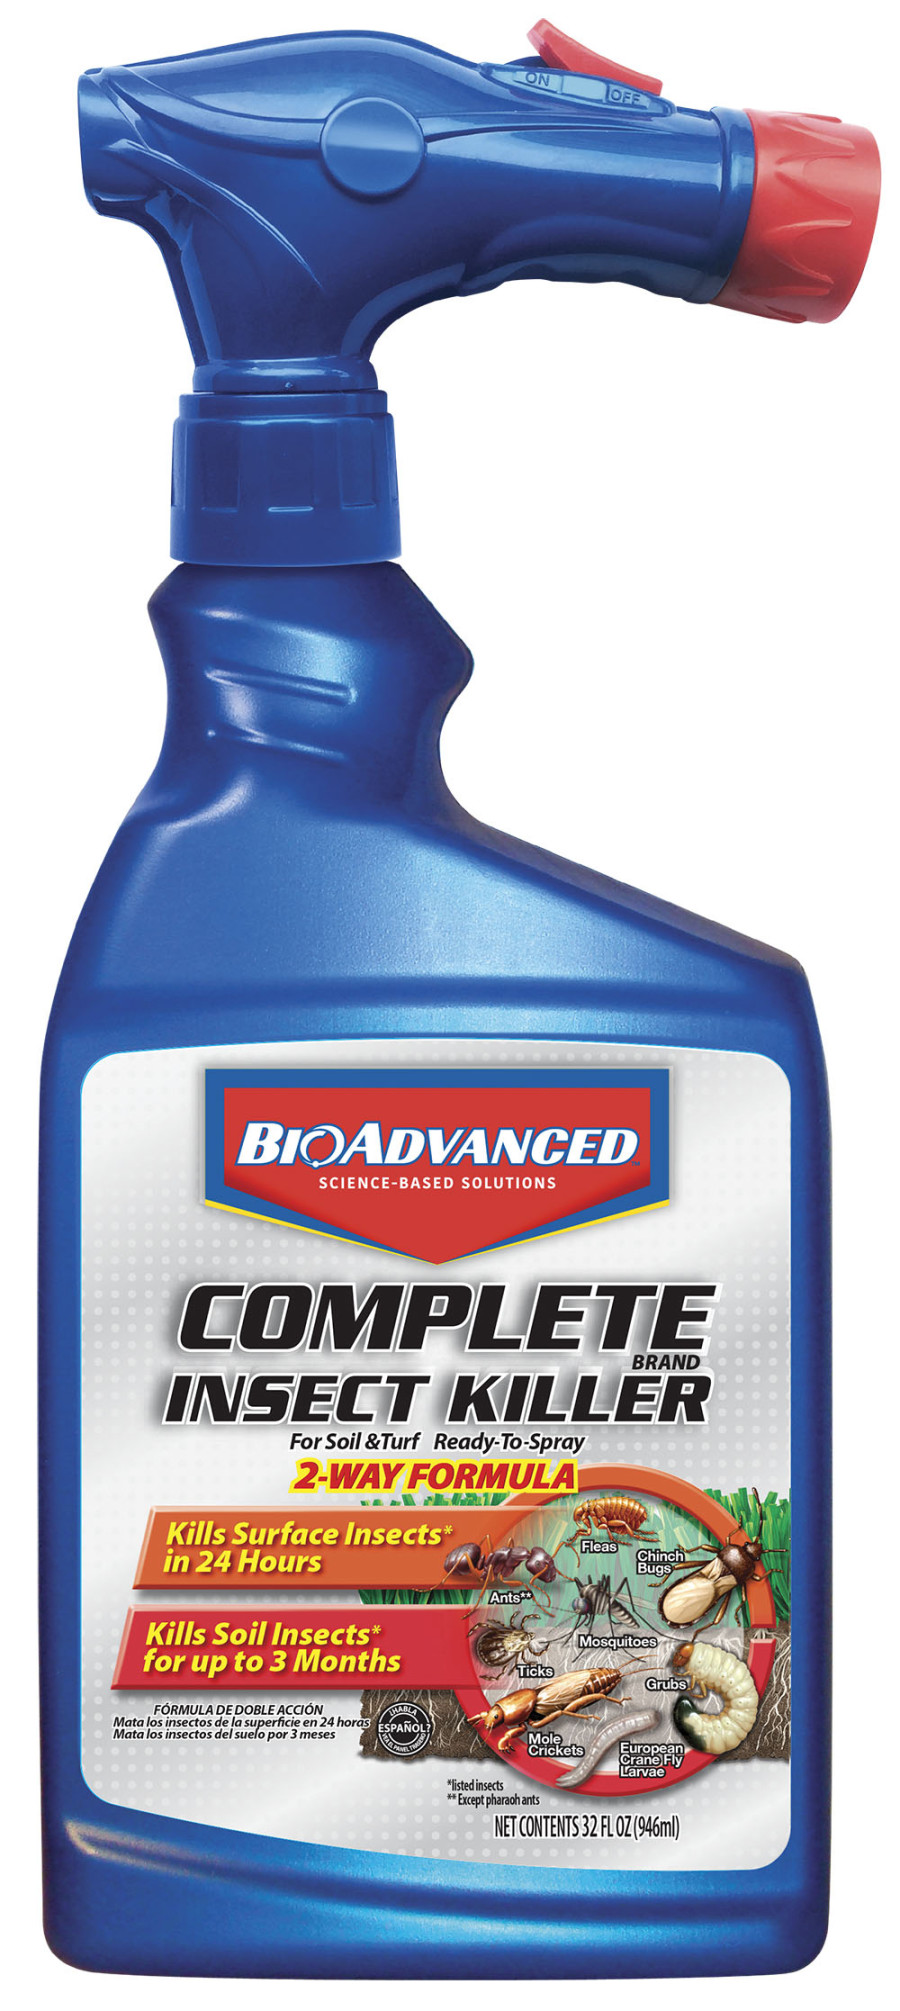 BioAdvanced Complete Insect Killer for Soil & Turf Ready to Spray 8ea/32 oz